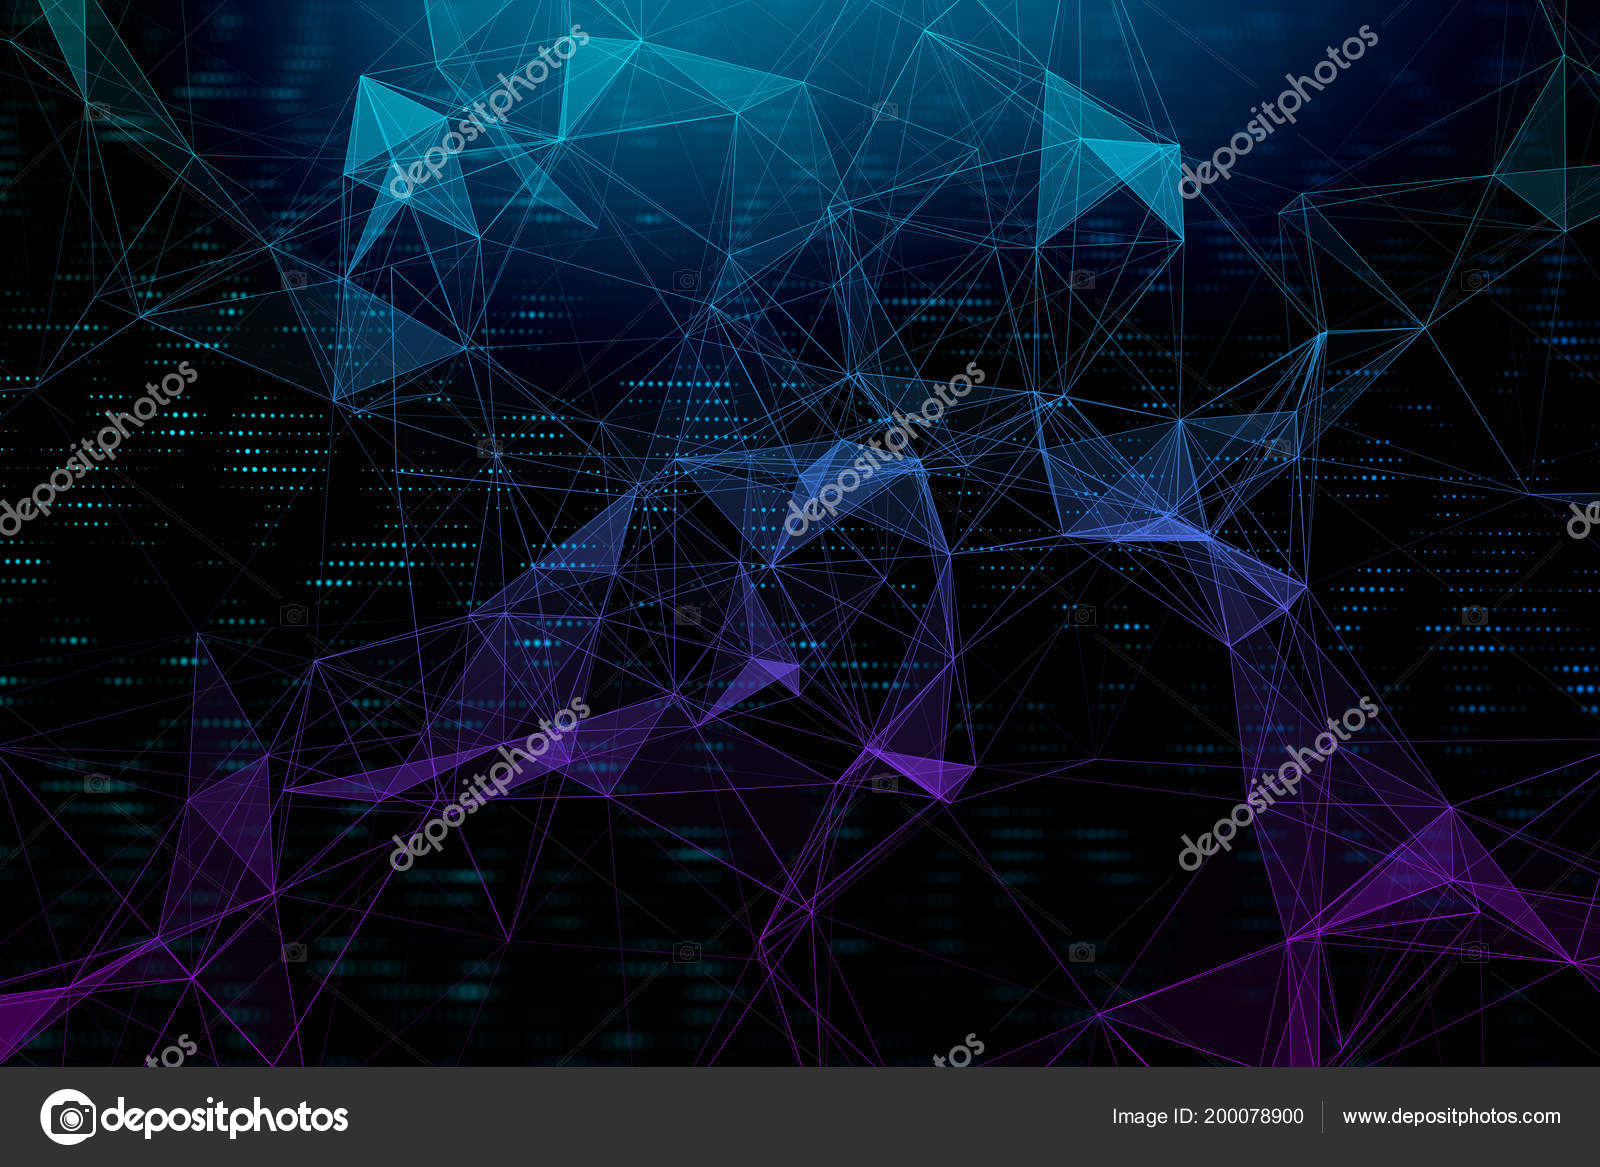 Blockchain Technology Wallpaper Creative Digital Polygonal